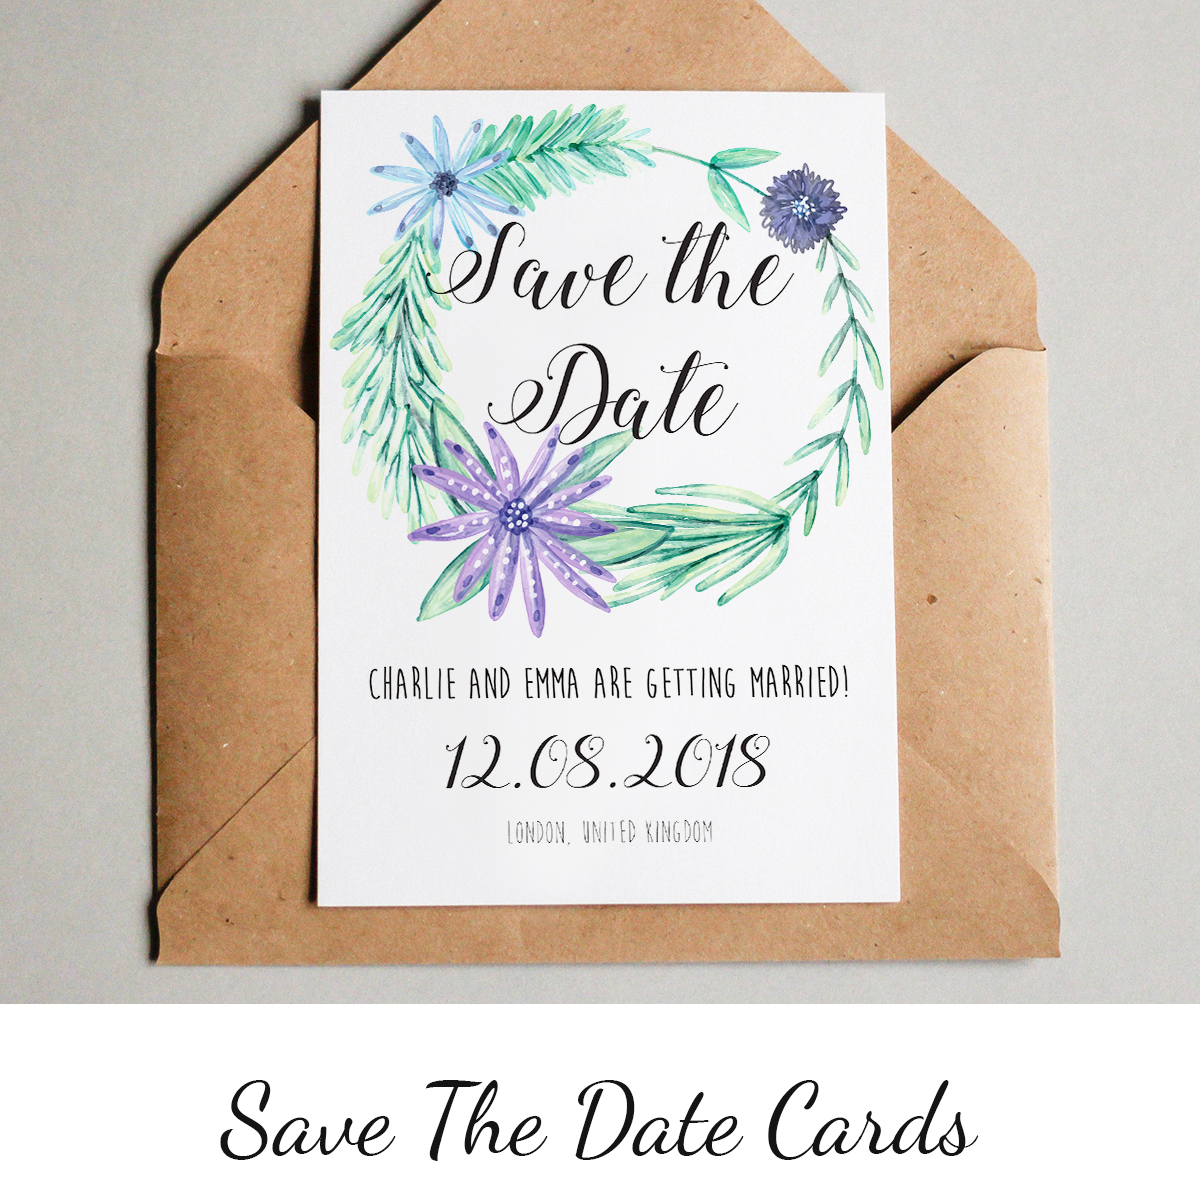 Get things started with our unique save the date cards >       Prices from 48p each